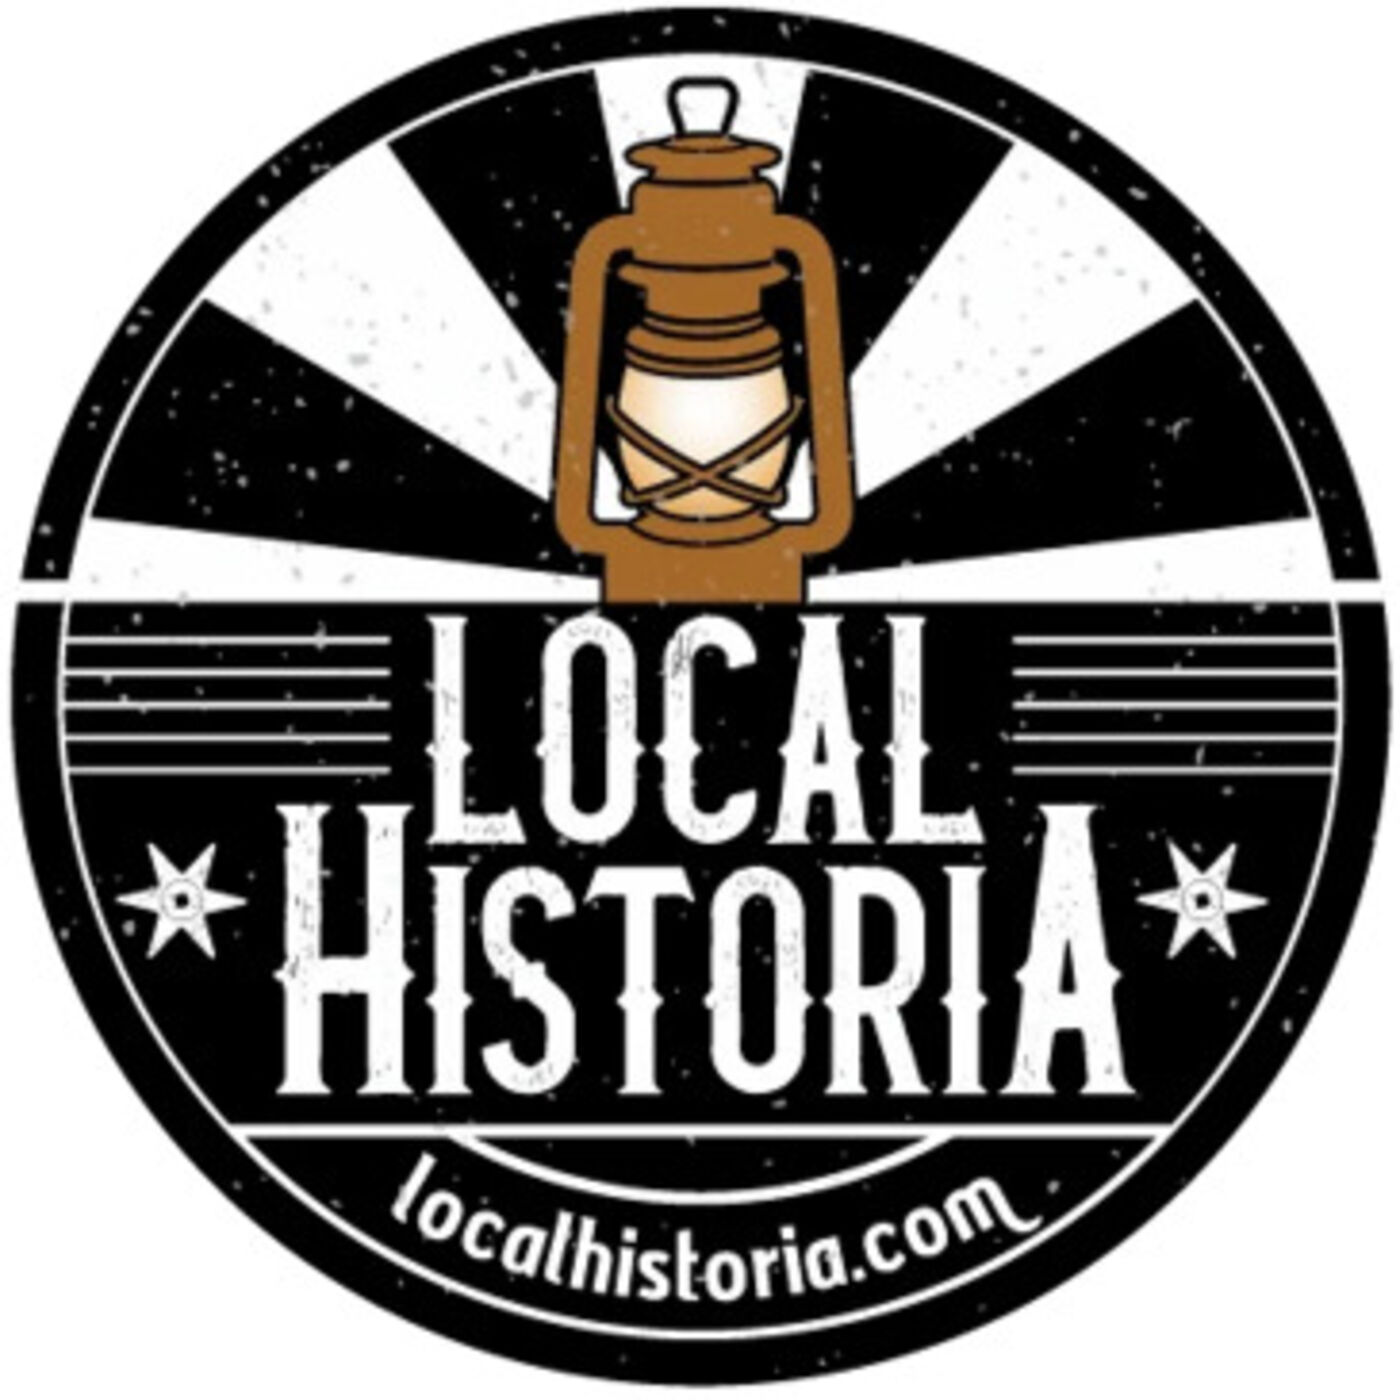 Episode 109: Matt Maris of Local Historia takes us on a tour of the suprising history of Centre County.